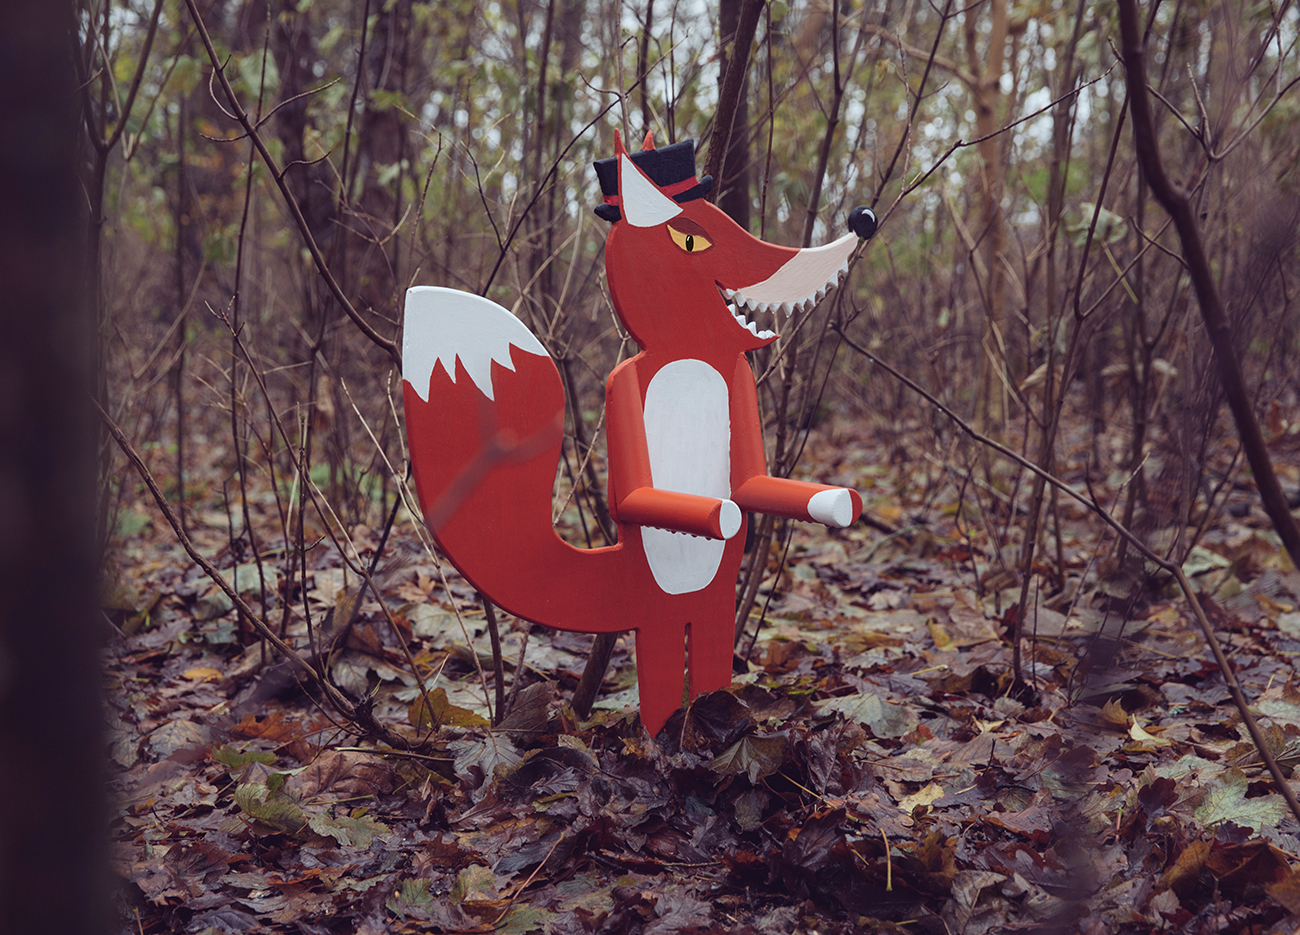 CAN YOU CATCH FRANK THE FOX?